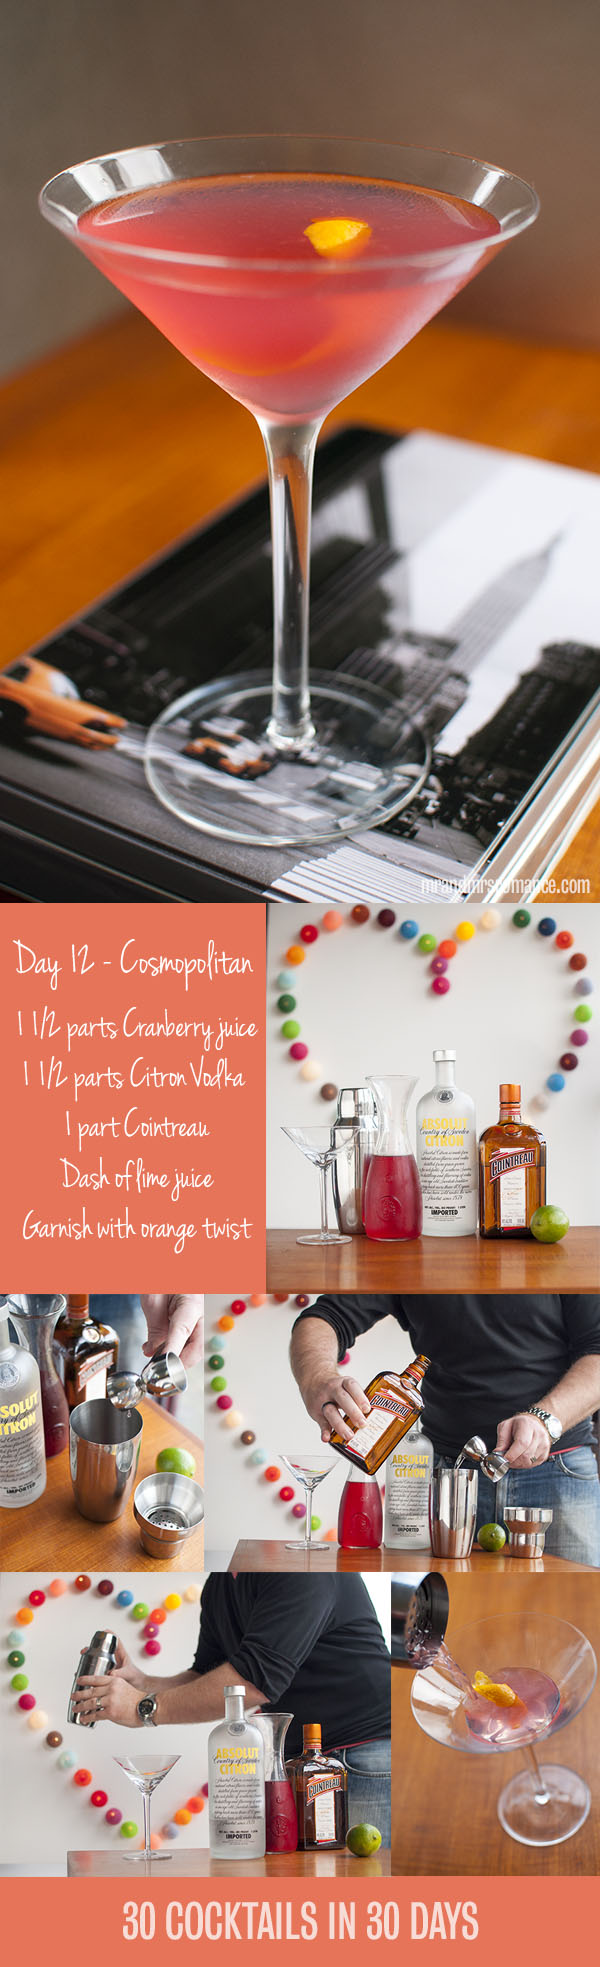 Mr and Mrs Romance - Day 12 - Cosmopolitan